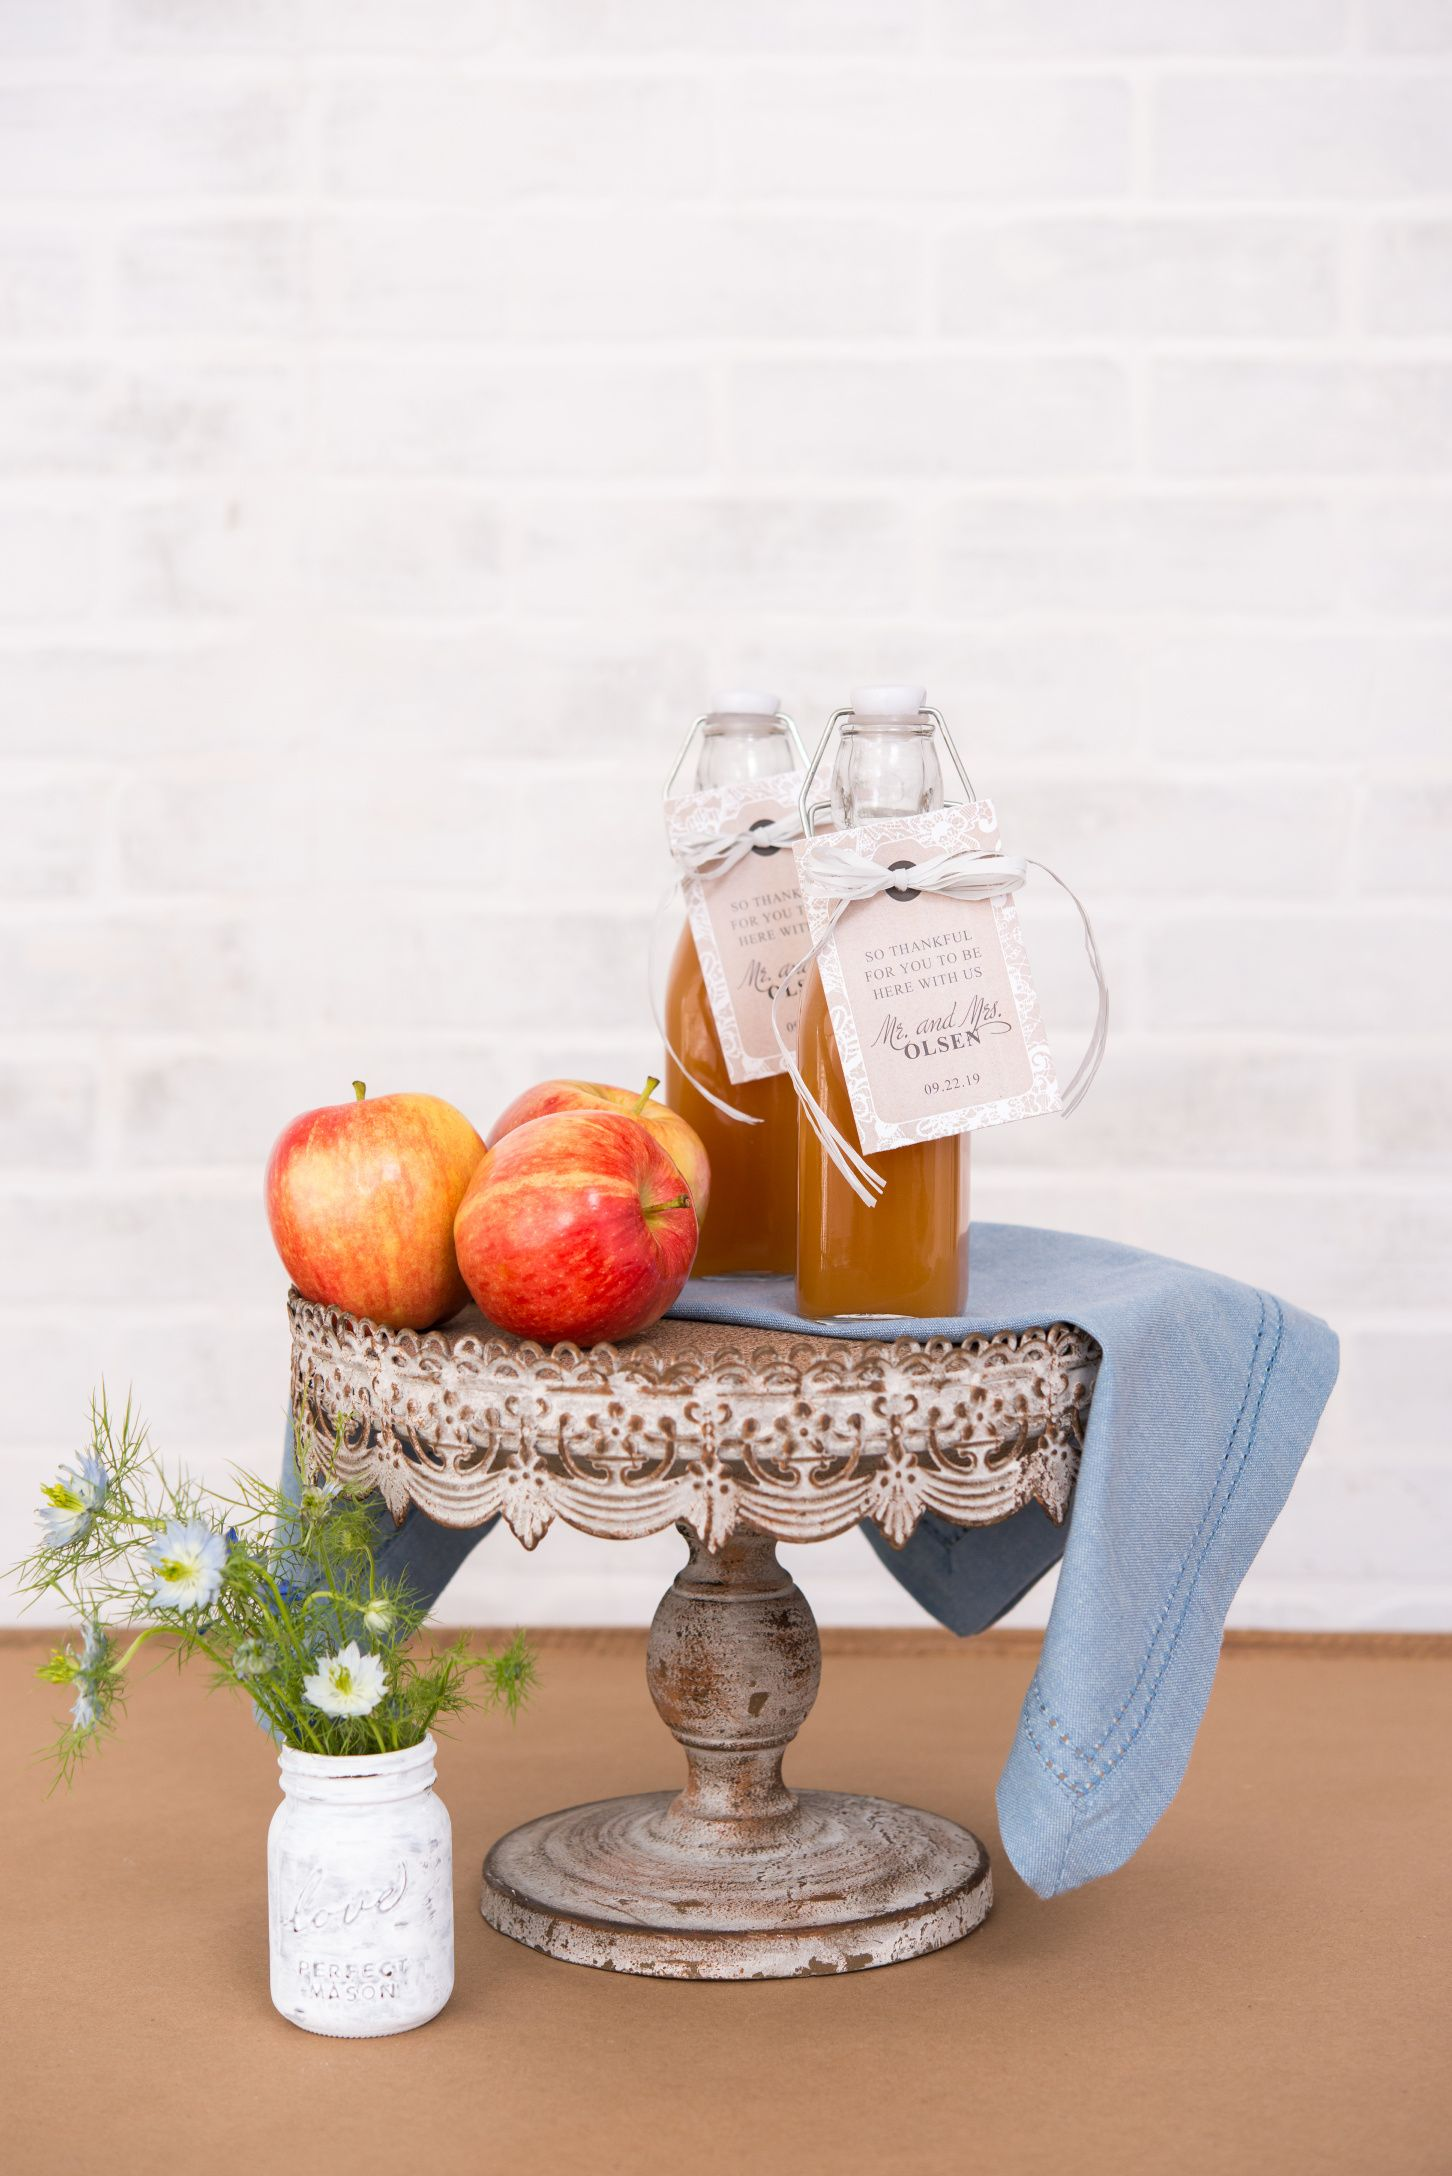 Our vintage water bottles are a versatile addition to any functional reception decor. Perfect for outdoor garden weddings, picnic inspired receptions, or any other style event. Fill them with water or fill them with wine for a casual French vibe.